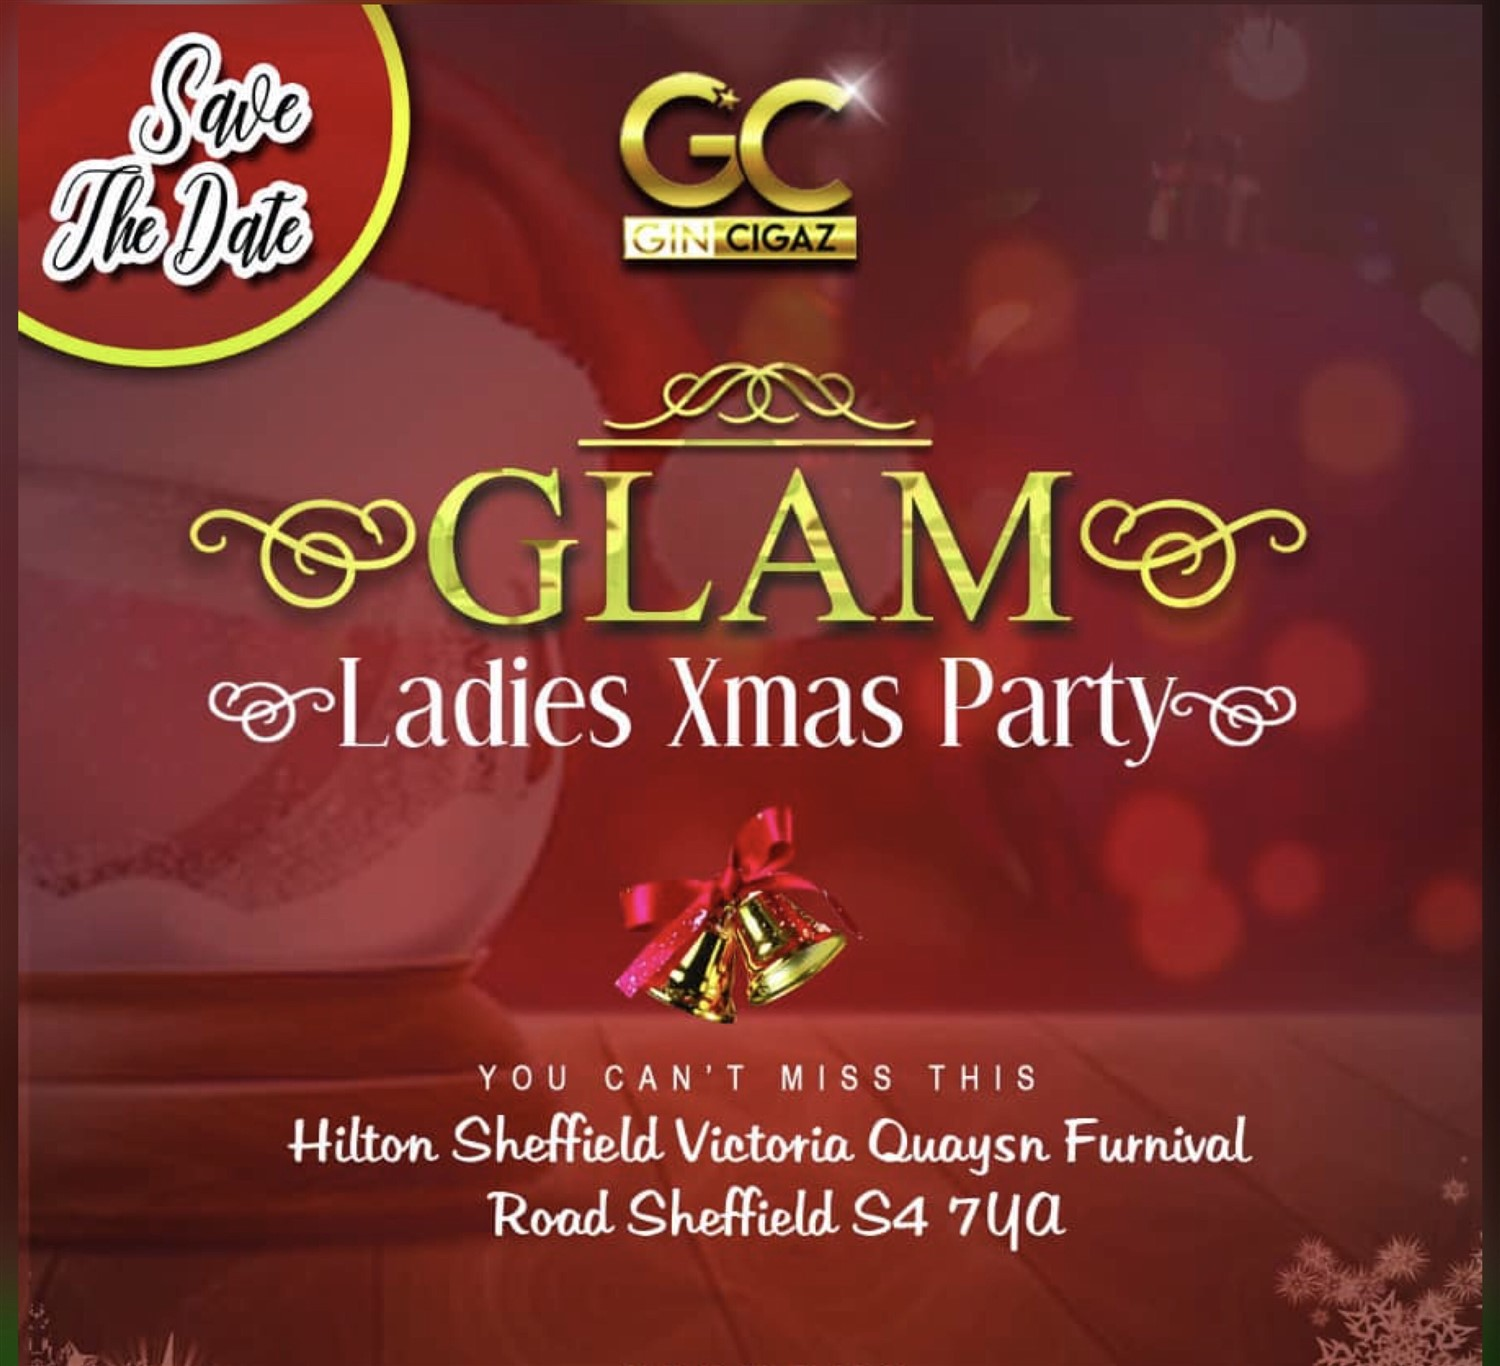 Glam Ladies Xmas 2019  on Dec 14, 17:00@Hilton Hotel Victoria Quays - Buy tickets and Get information on www.gincigaz.com